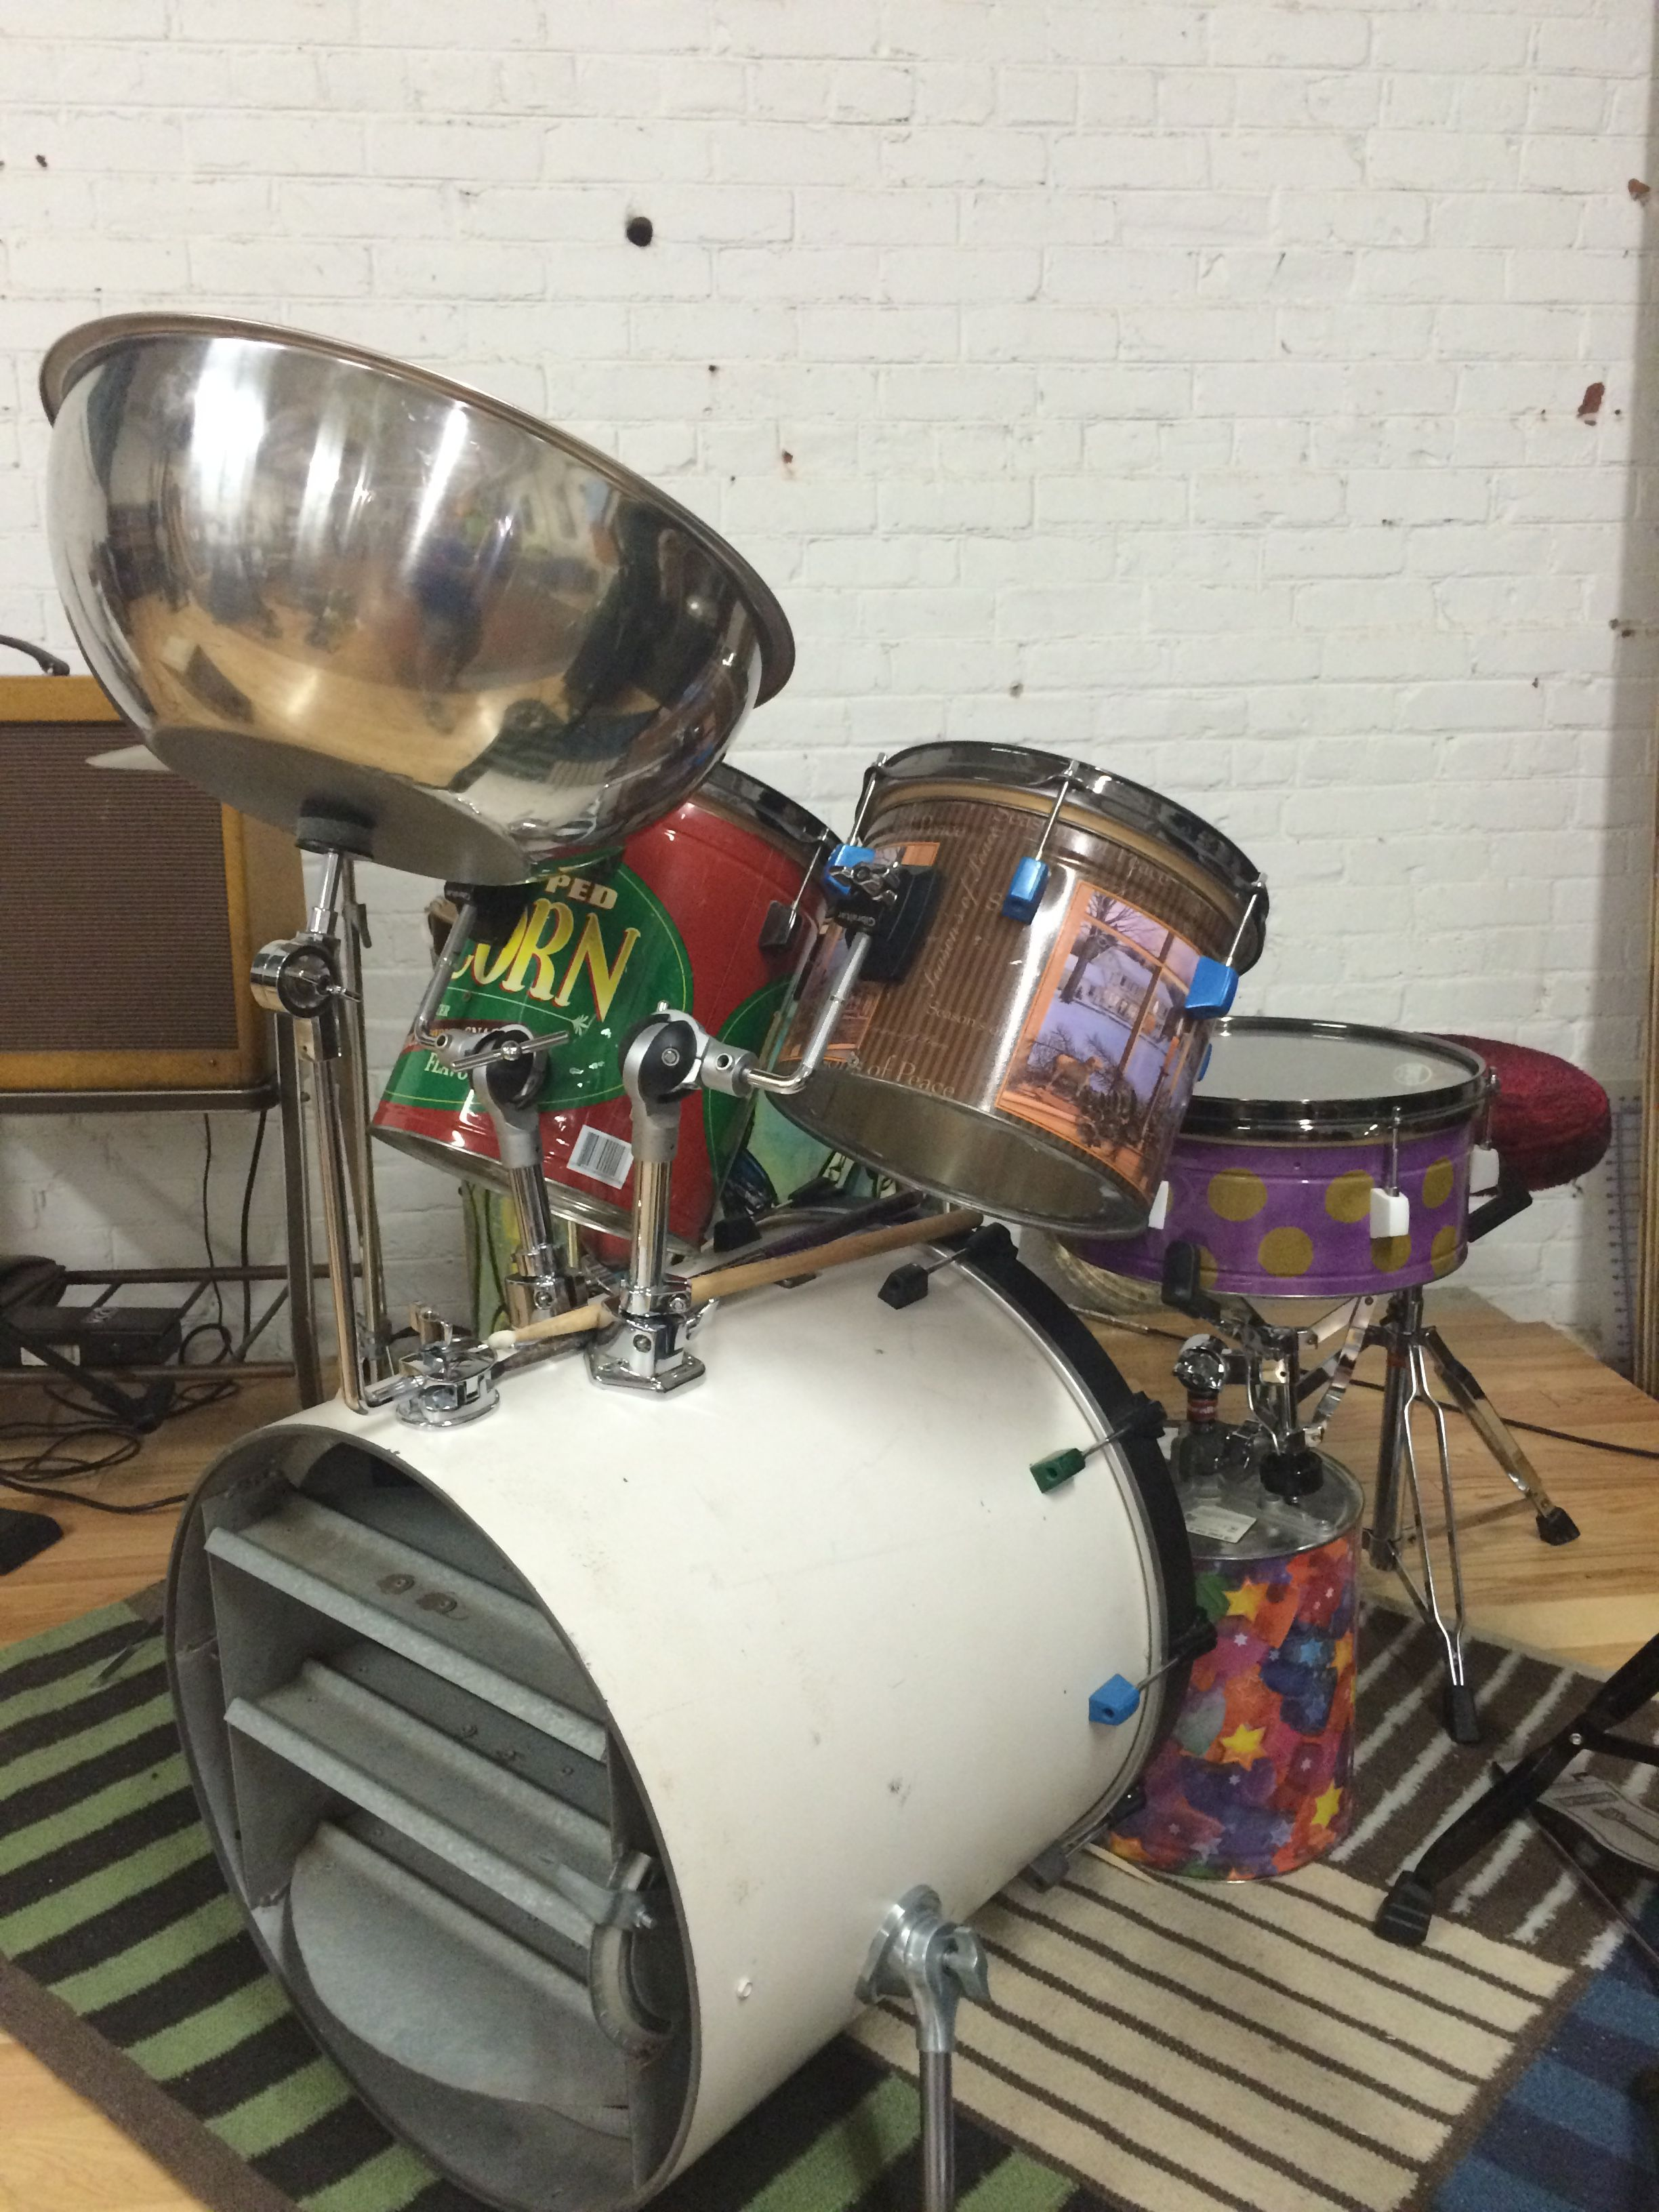 Recycled Drum Set Made With A Ventilation Shaft, Pop Corn